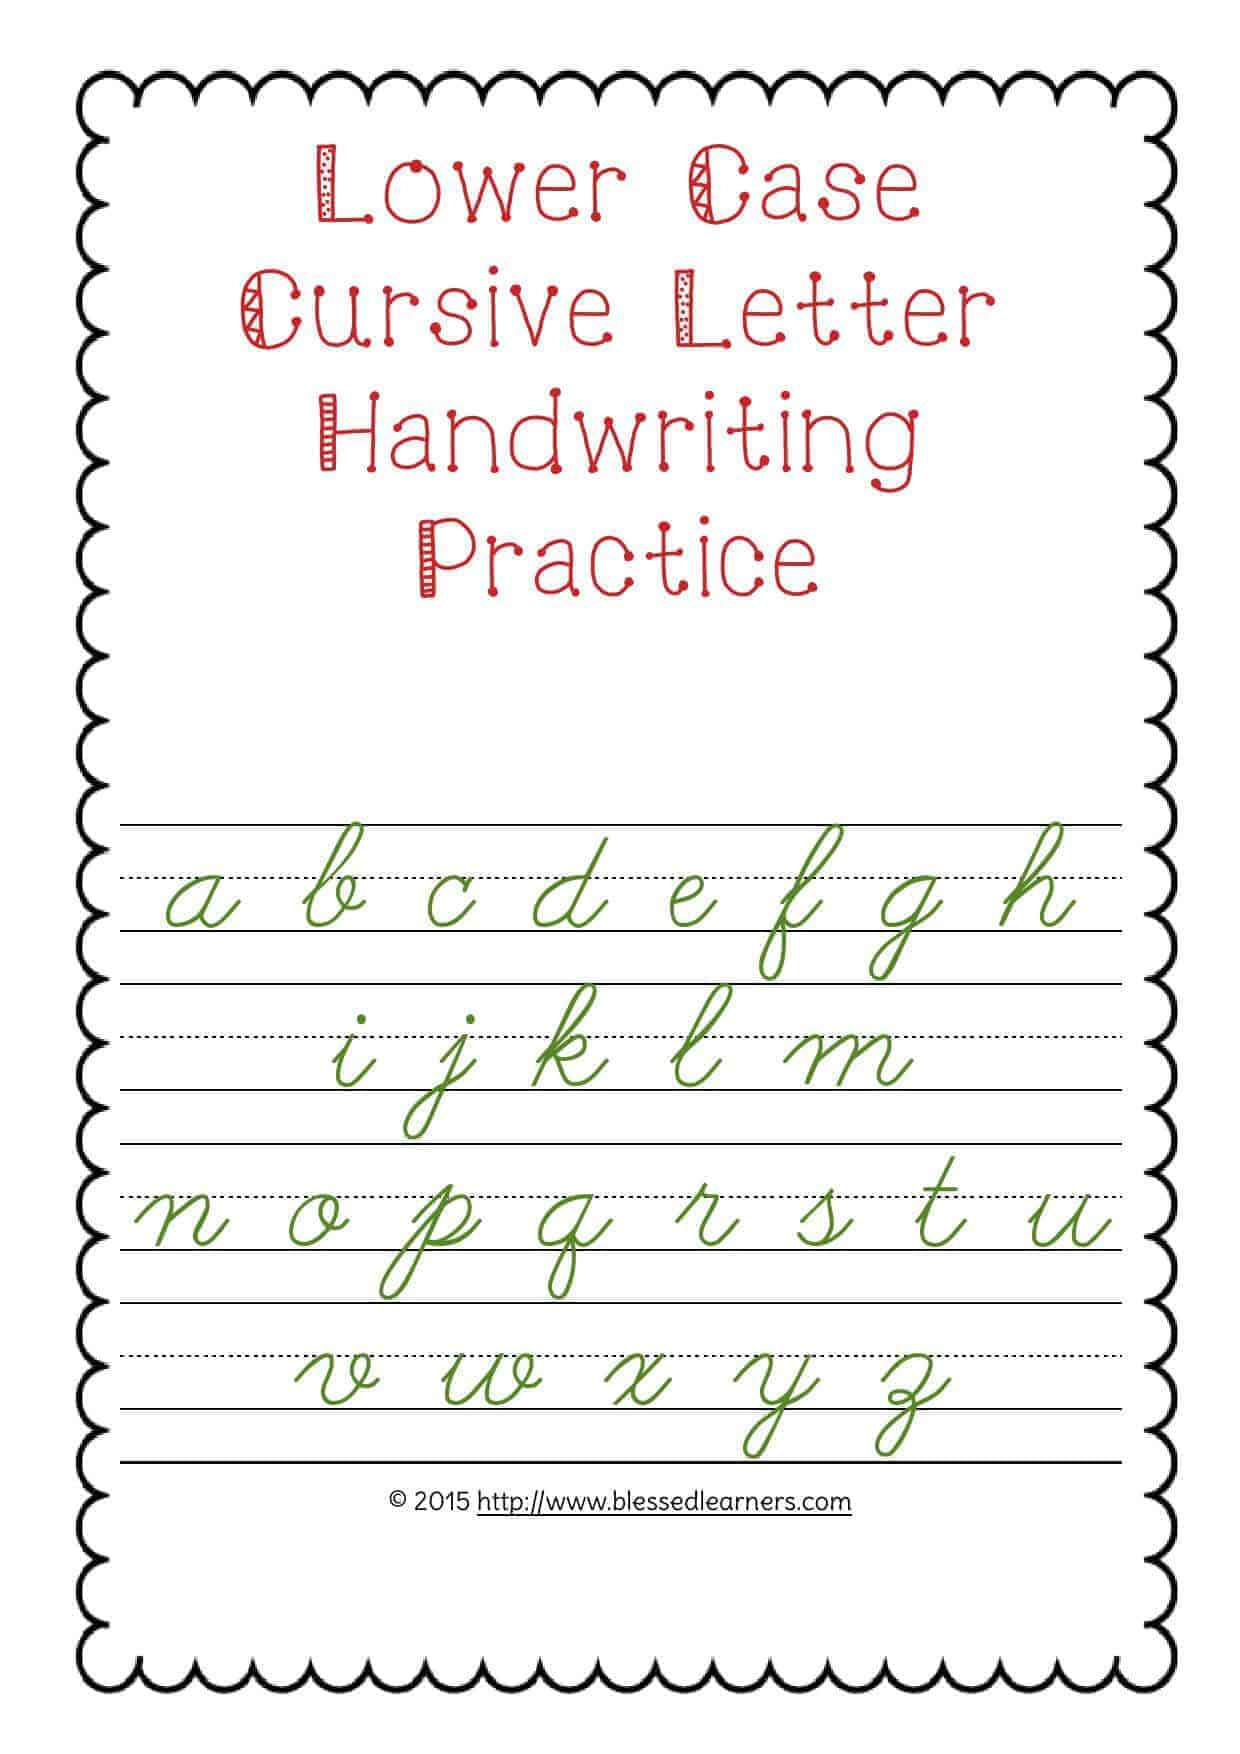 Lower Case Letter Handwriting Practice